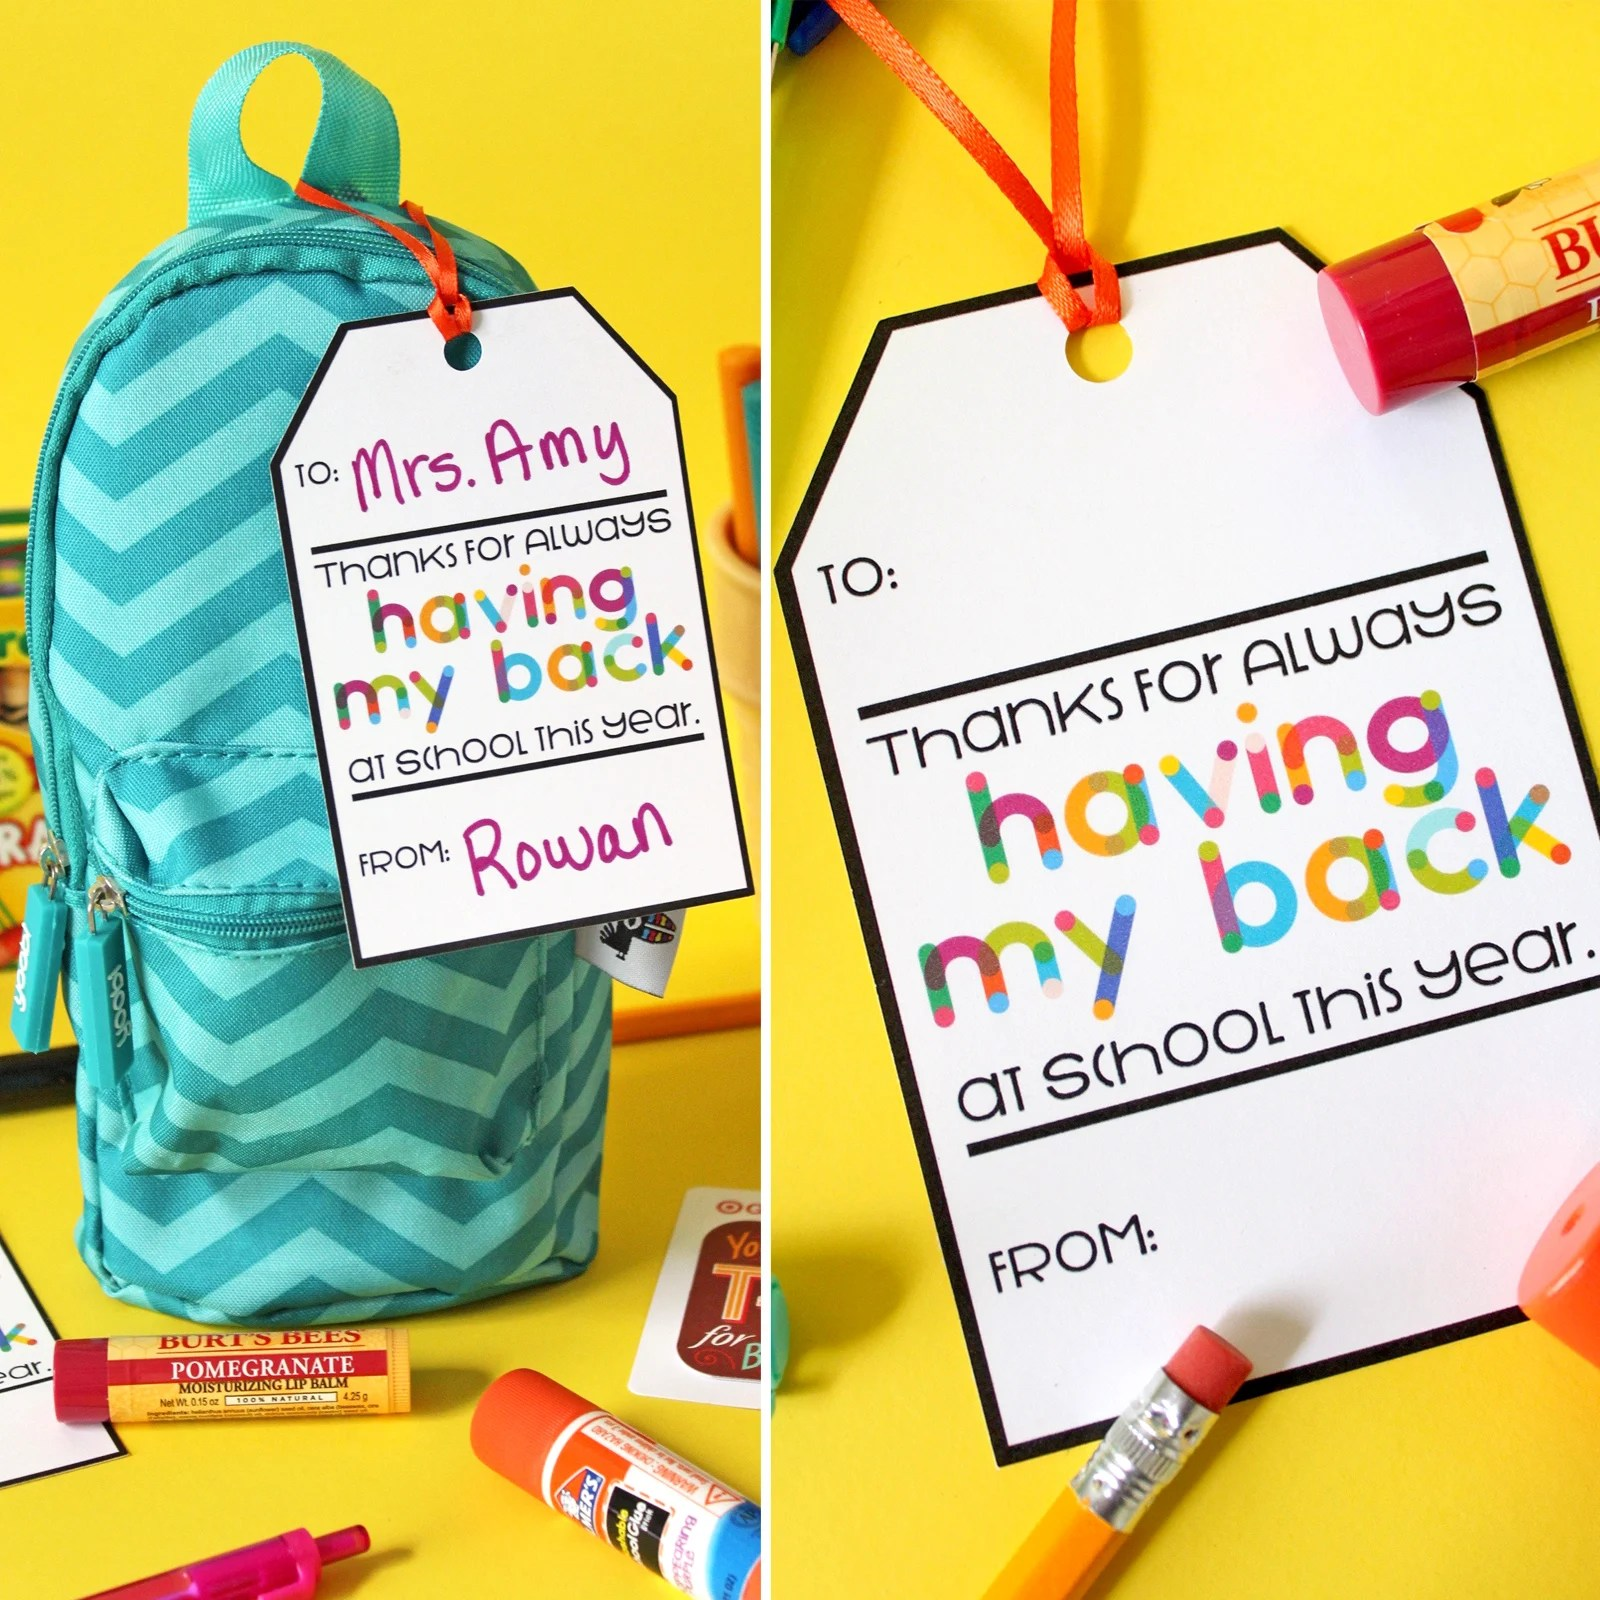 Free Printable Teacher Gift Tag Thanks For Having My Back Pack With Supplies